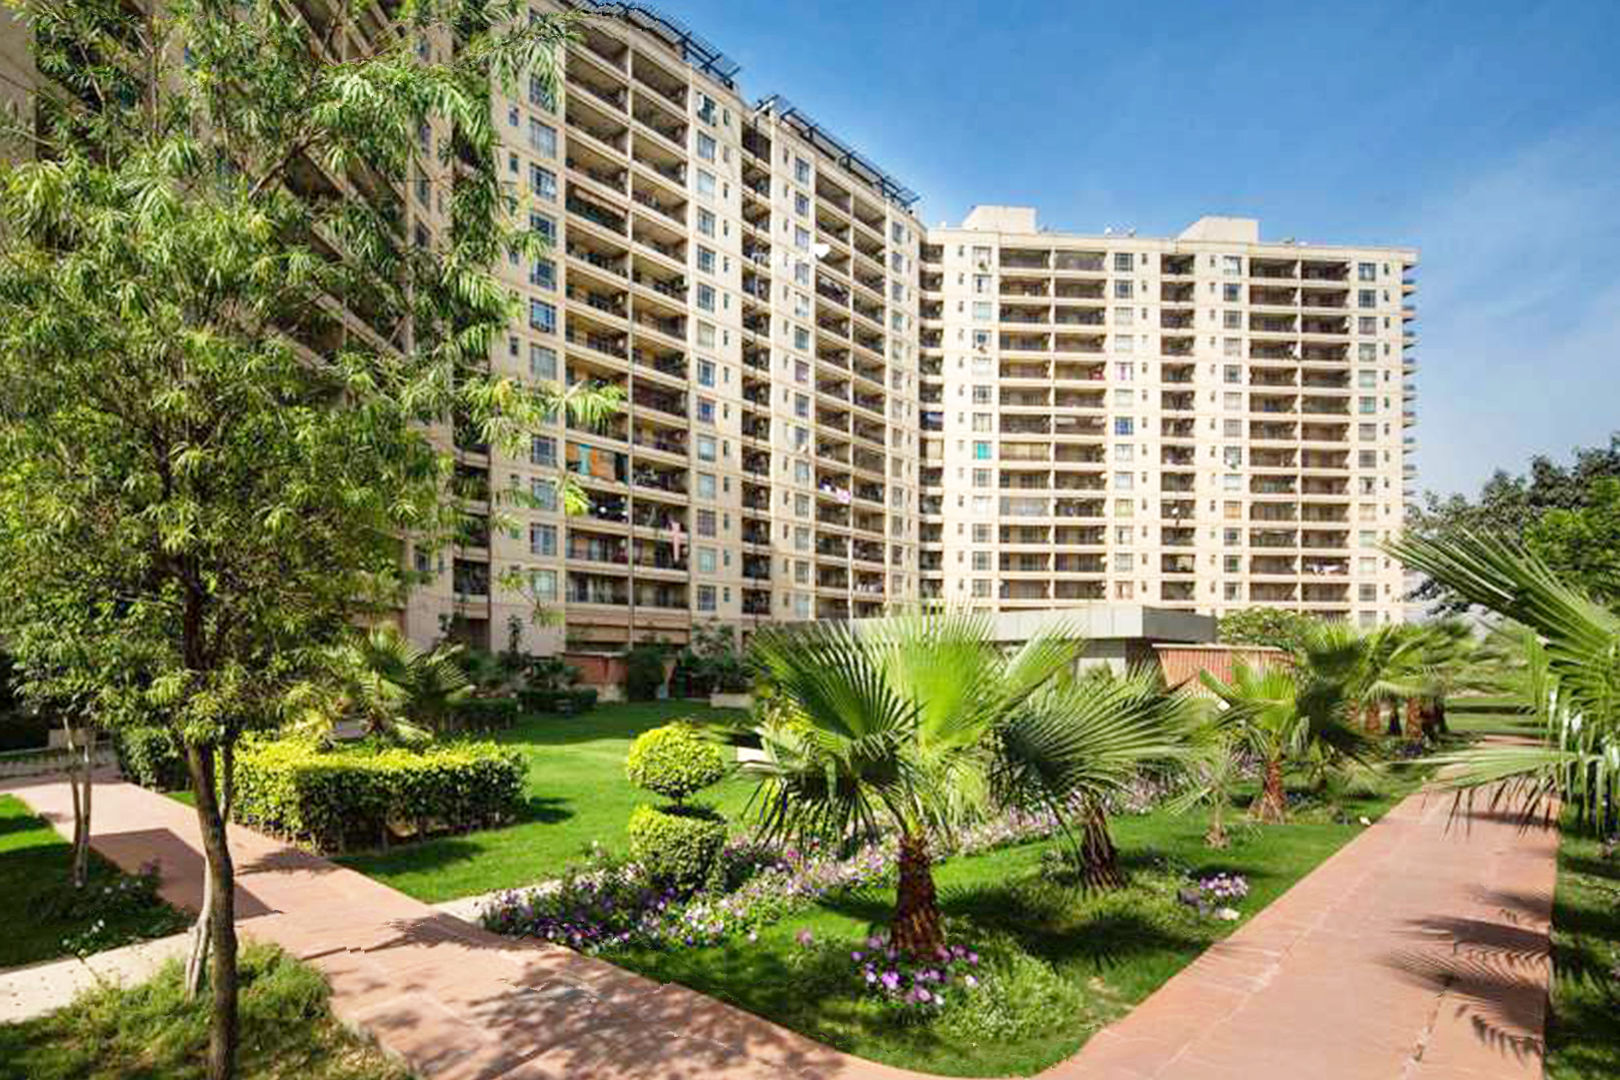 Serviced Apartments in Gurgaon | Luxury Service Apartments for Rent & Sale in Gurgaon